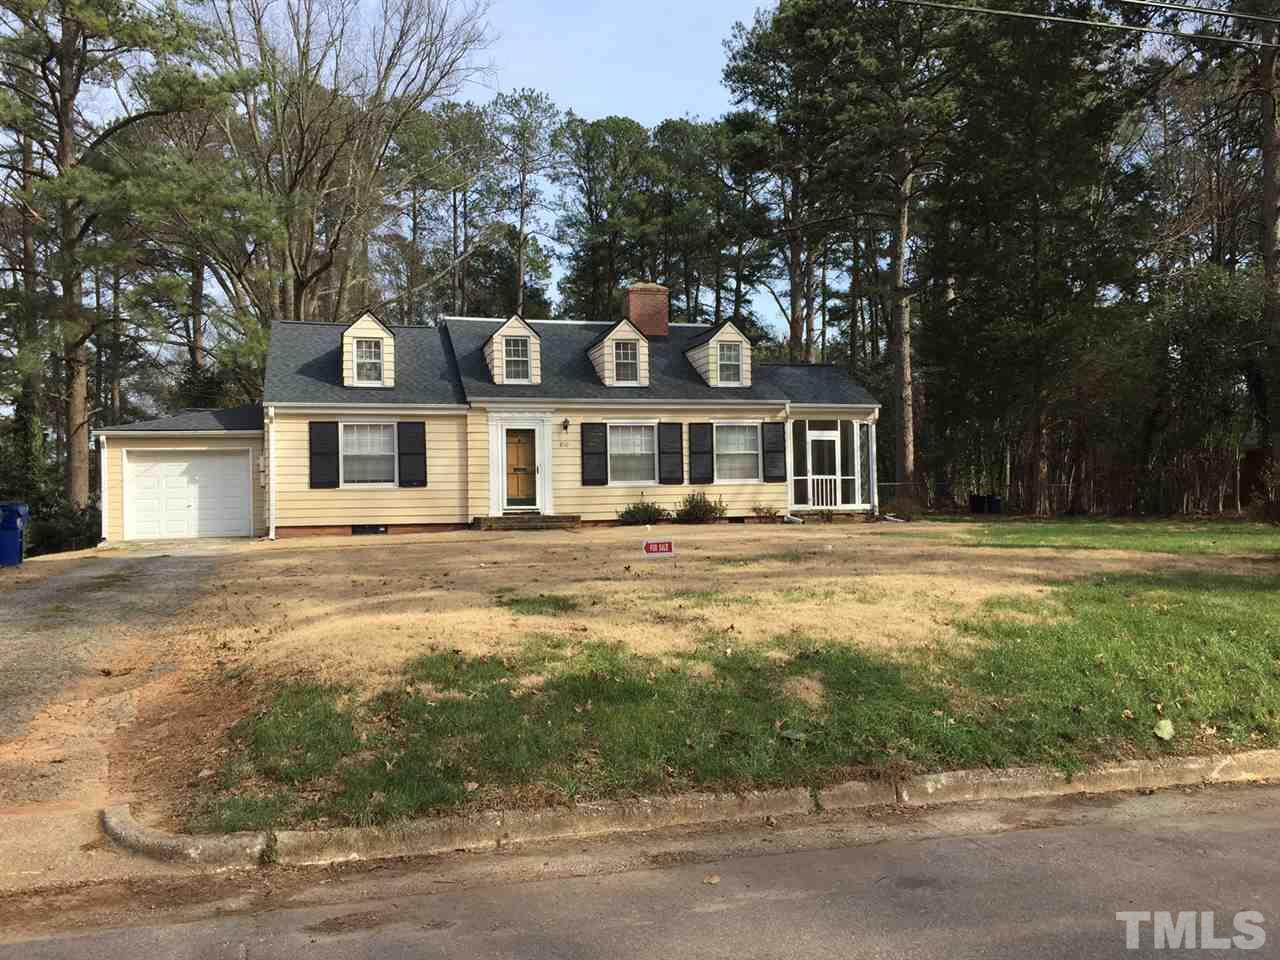 Fixer upper homes for sale in raleigh autos post for Fixer upper homes for sale by owner